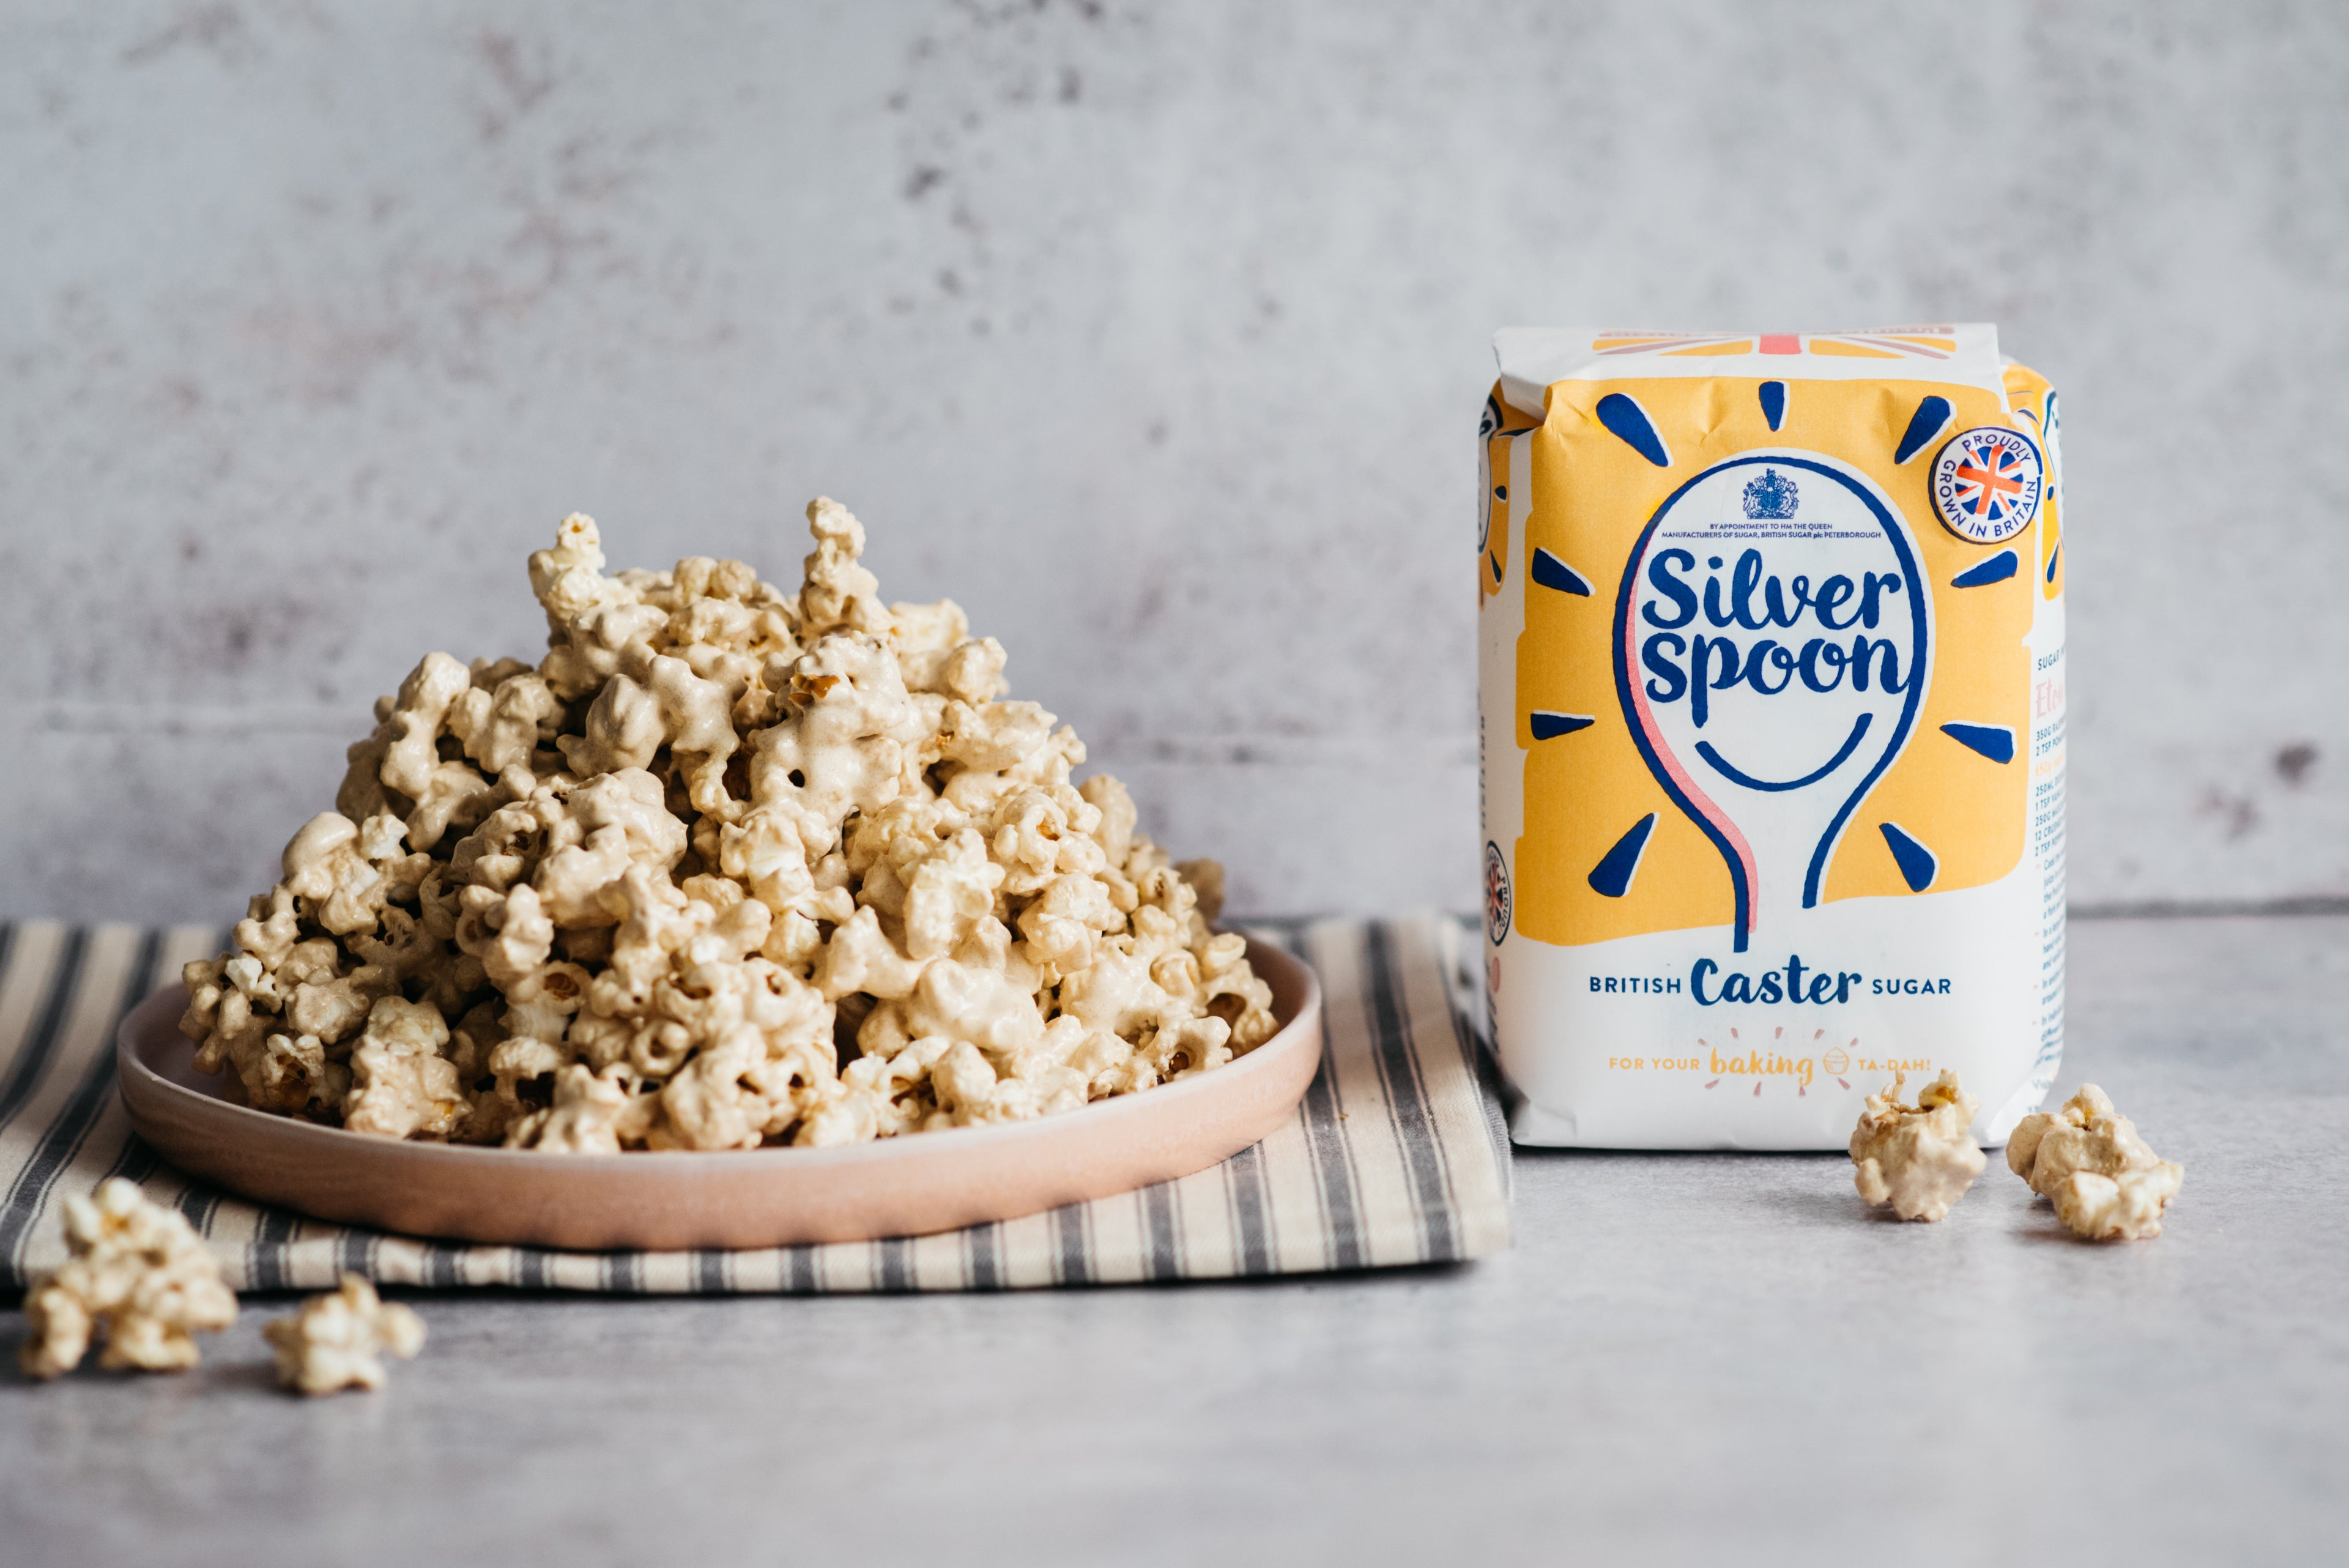 high pile of marshmallow popcorn on a plate with a pack of sugar next to it